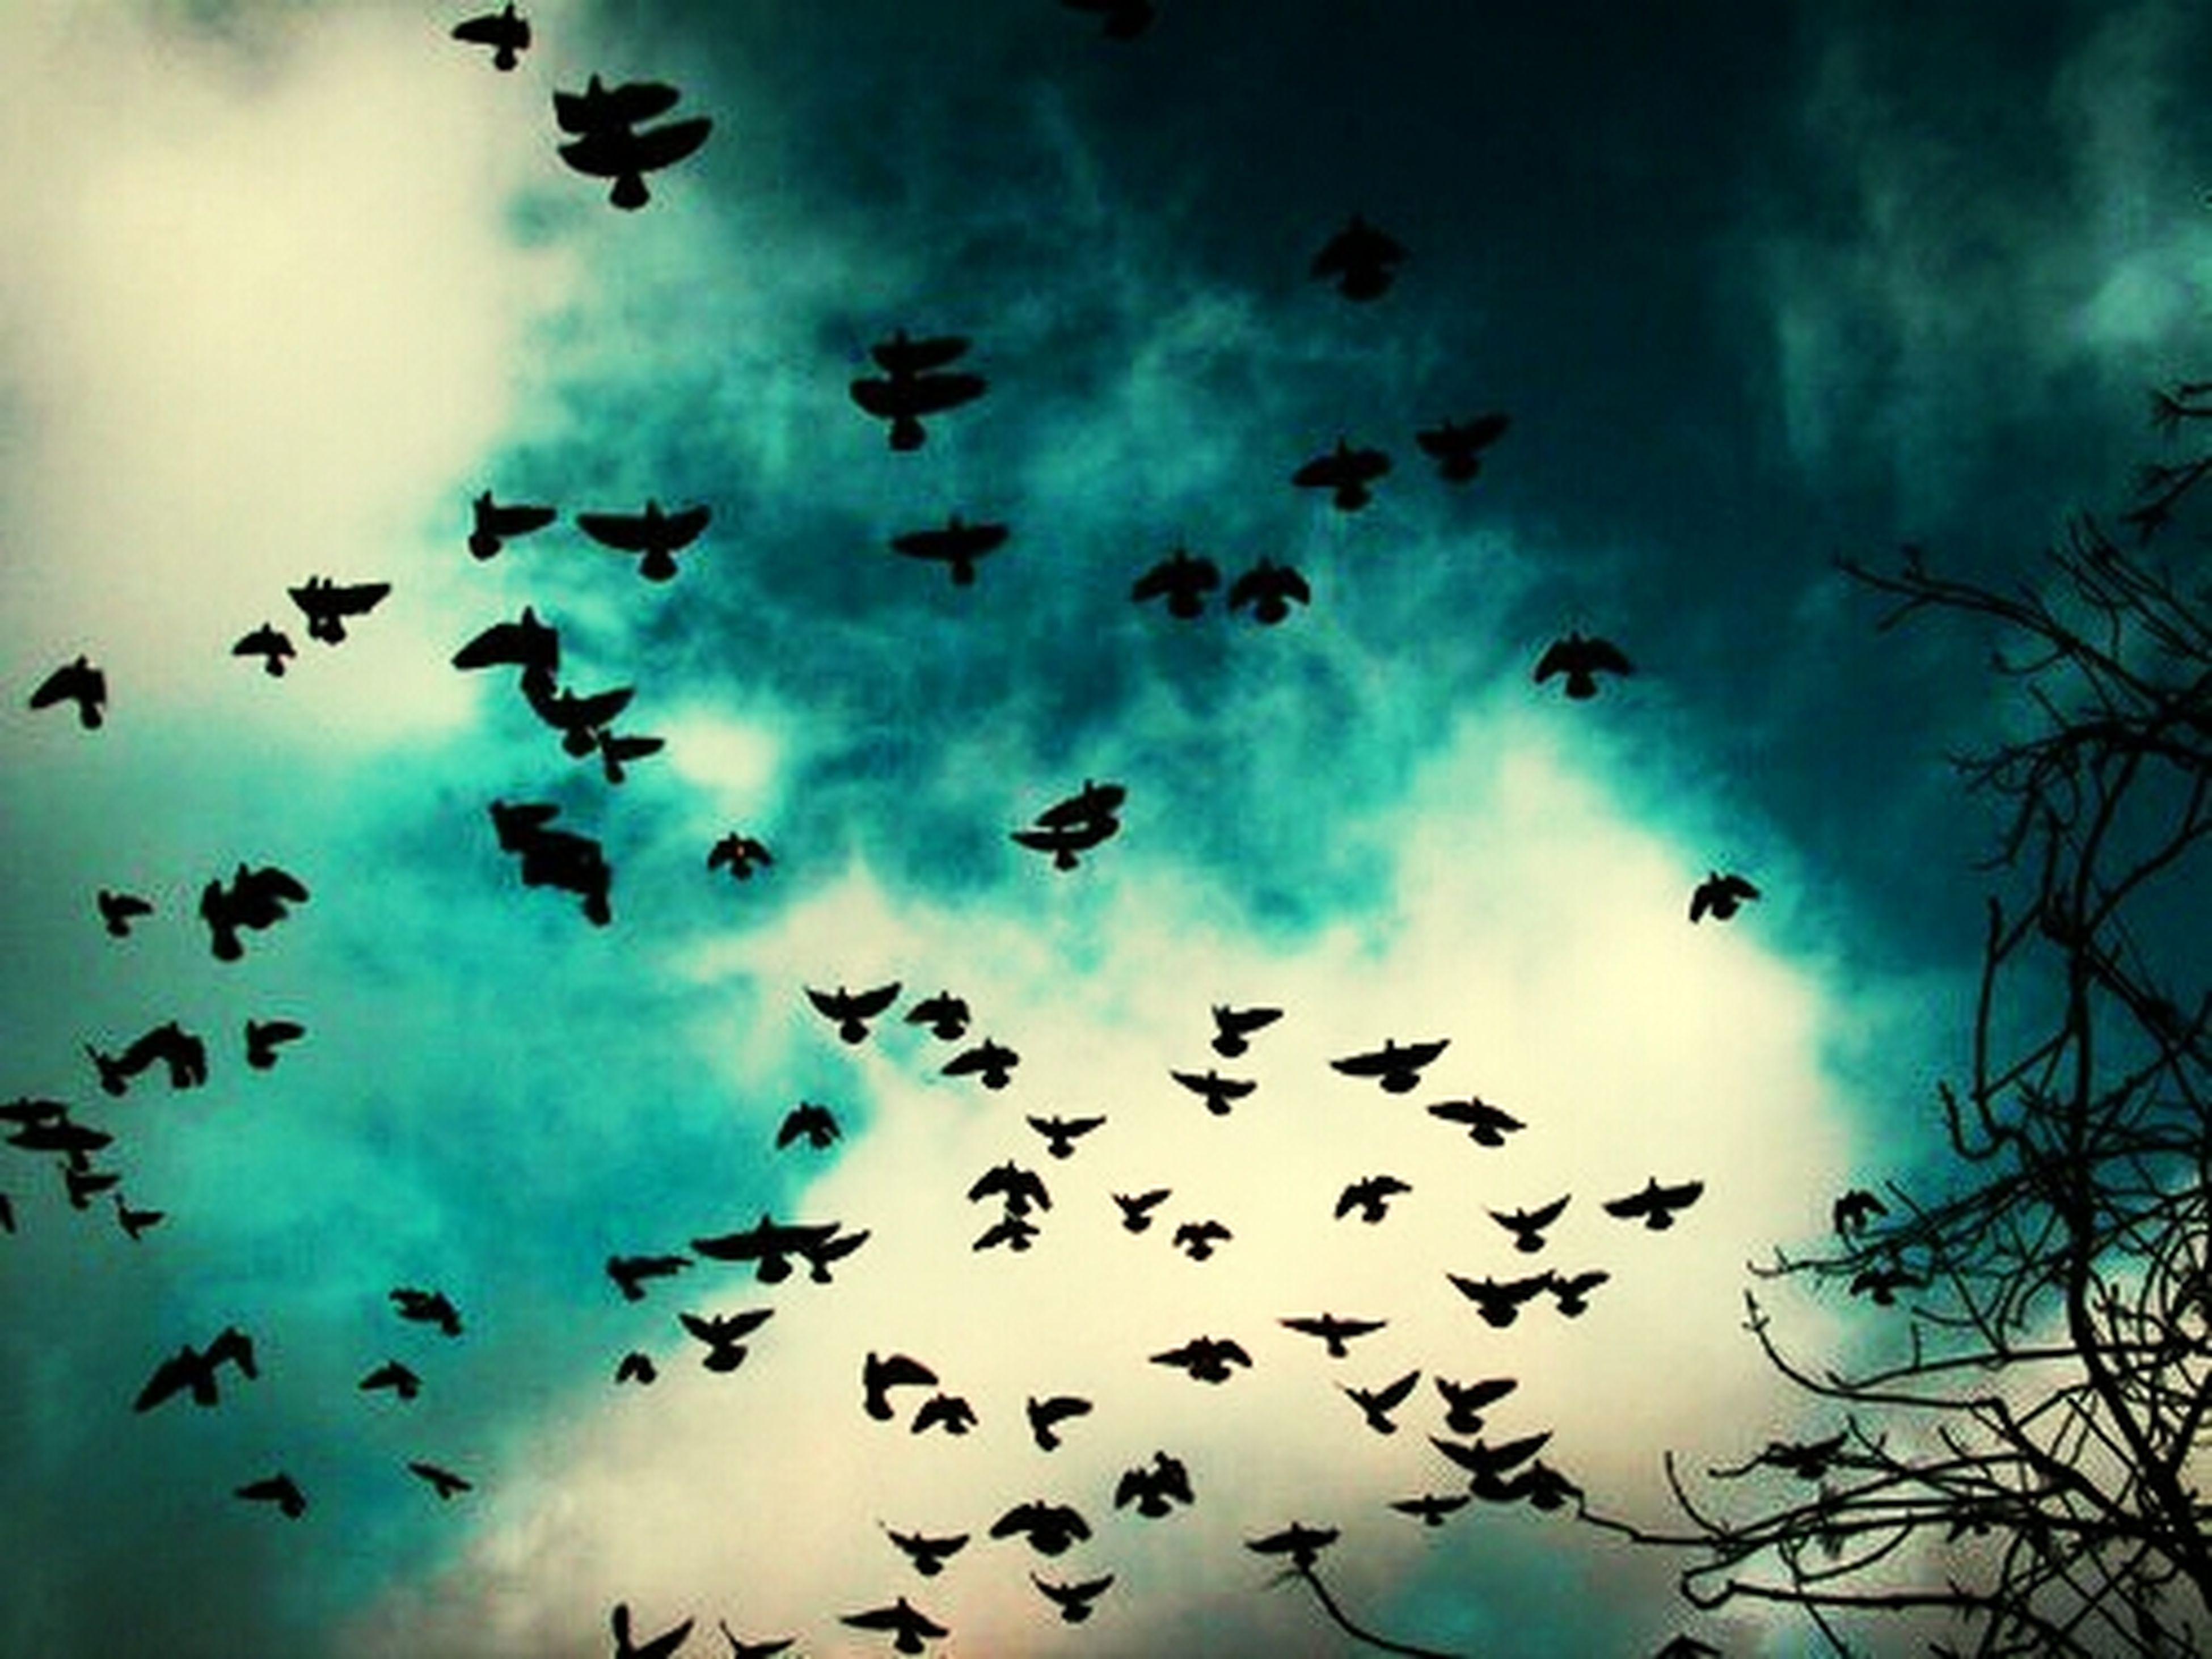 bird, flying, low angle view, animal themes, animals in the wild, flock of birds, wildlife, sky, cloud - sky, silhouette, cloudy, mid-air, nature, cloud, beauty in nature, spread wings, outdoors, day, blue